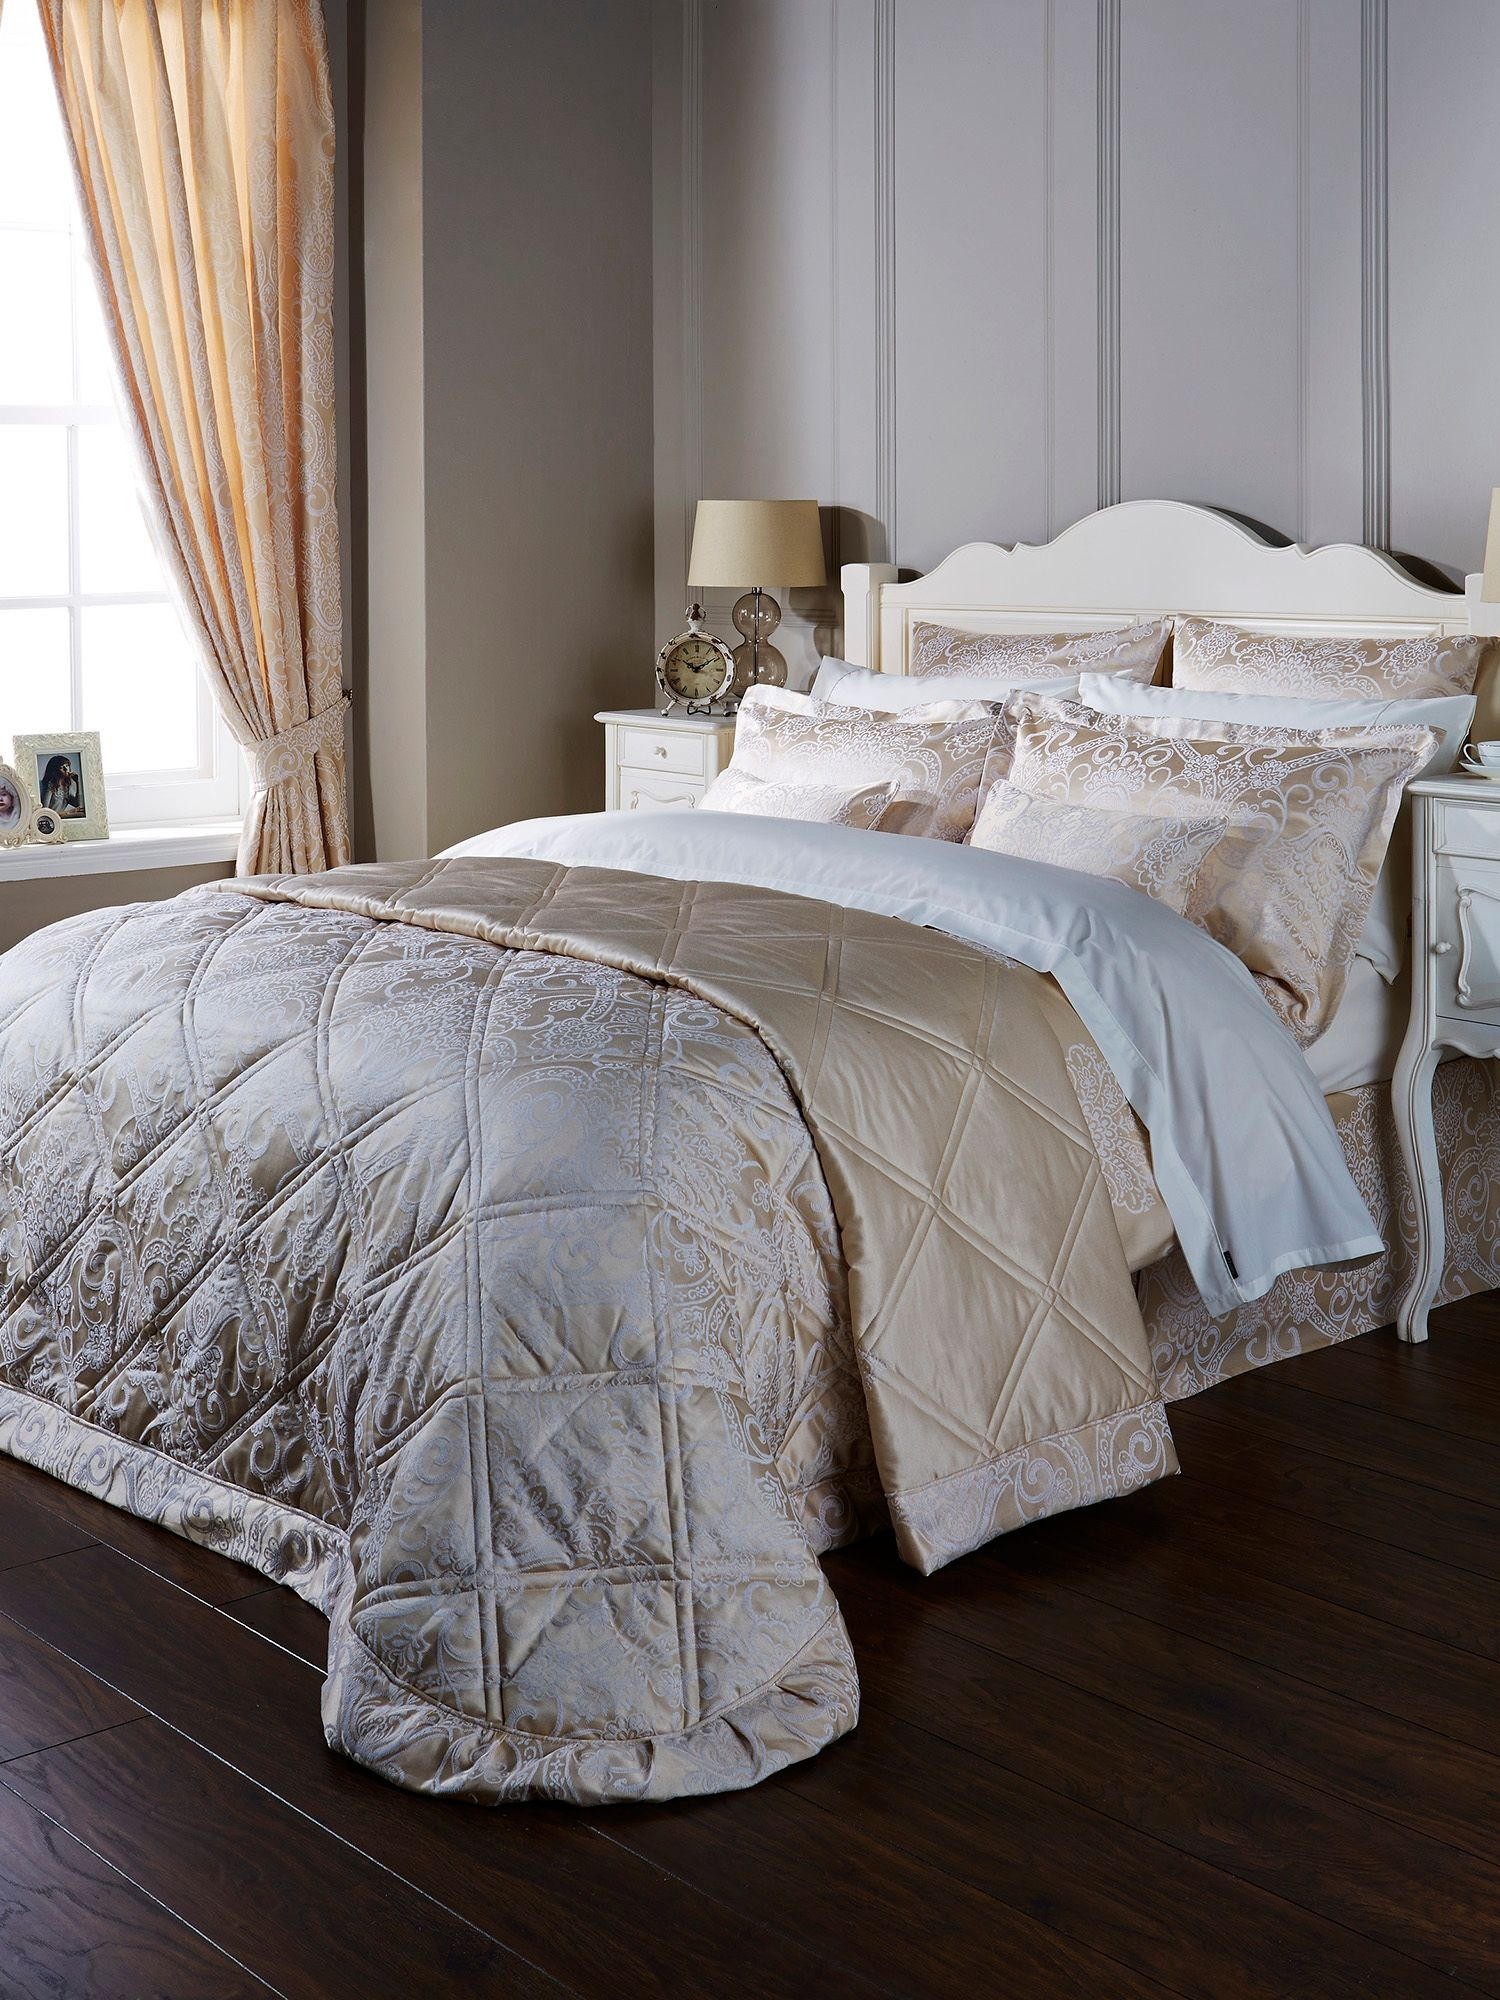 Tiverton Double Duvet gold